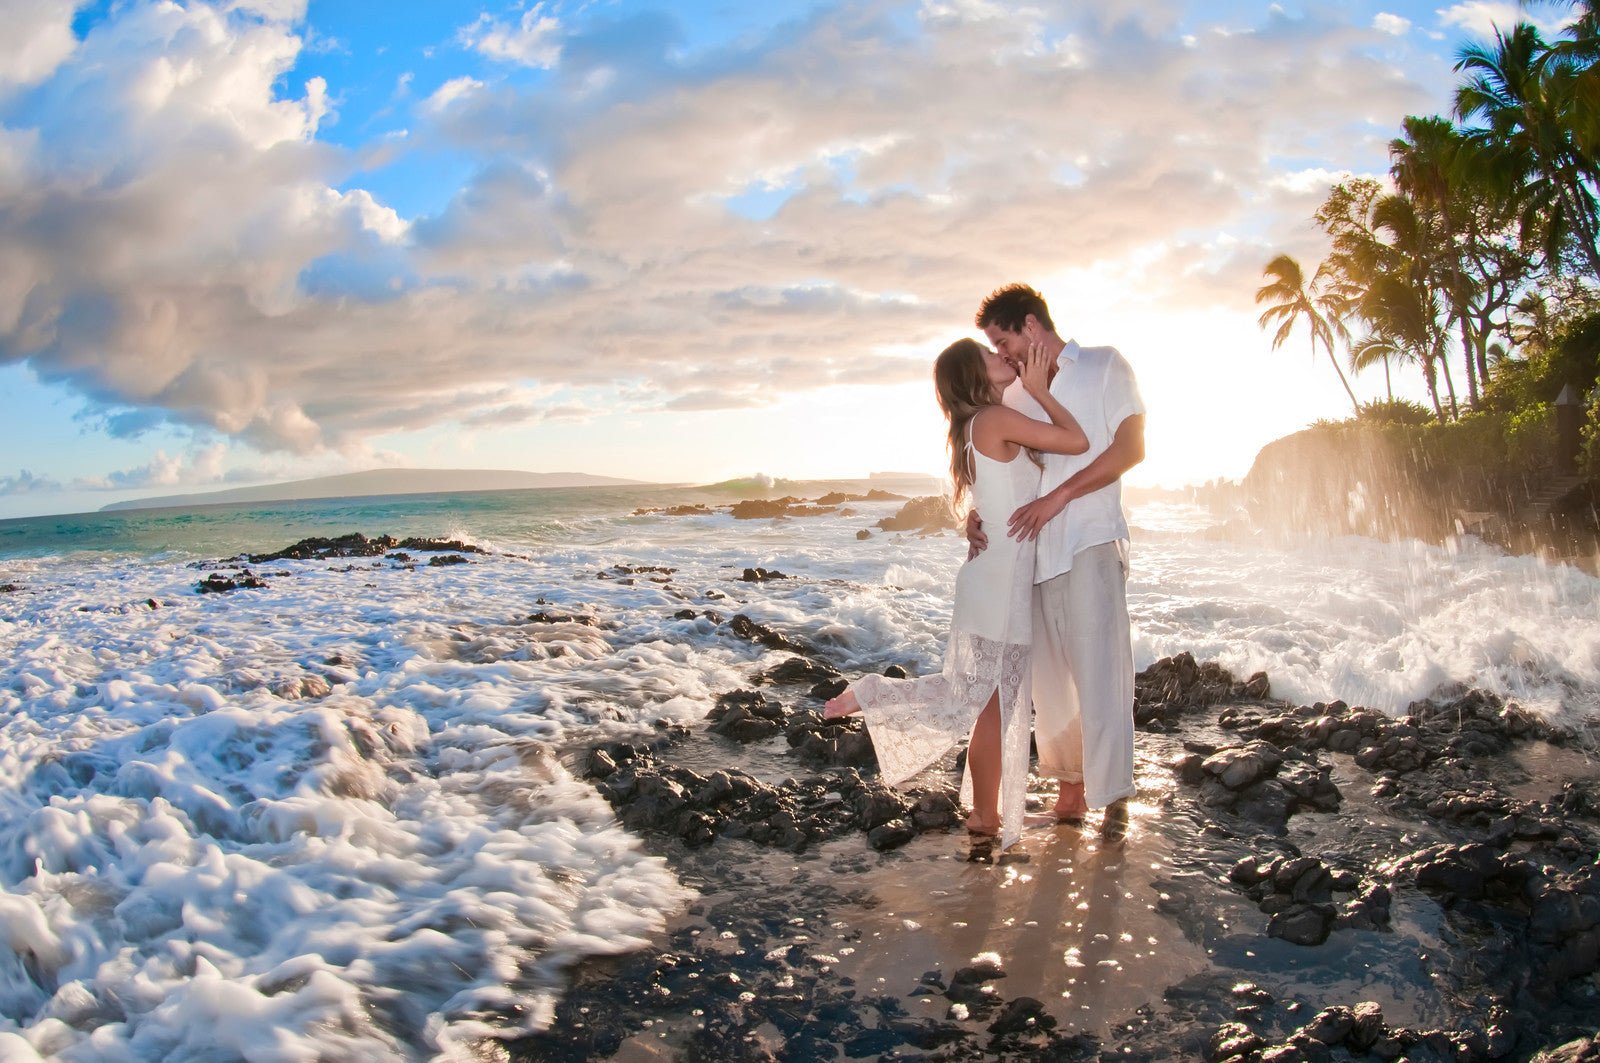 Maui Wedding Packages - Maui Wedding Photography & Planning Studio